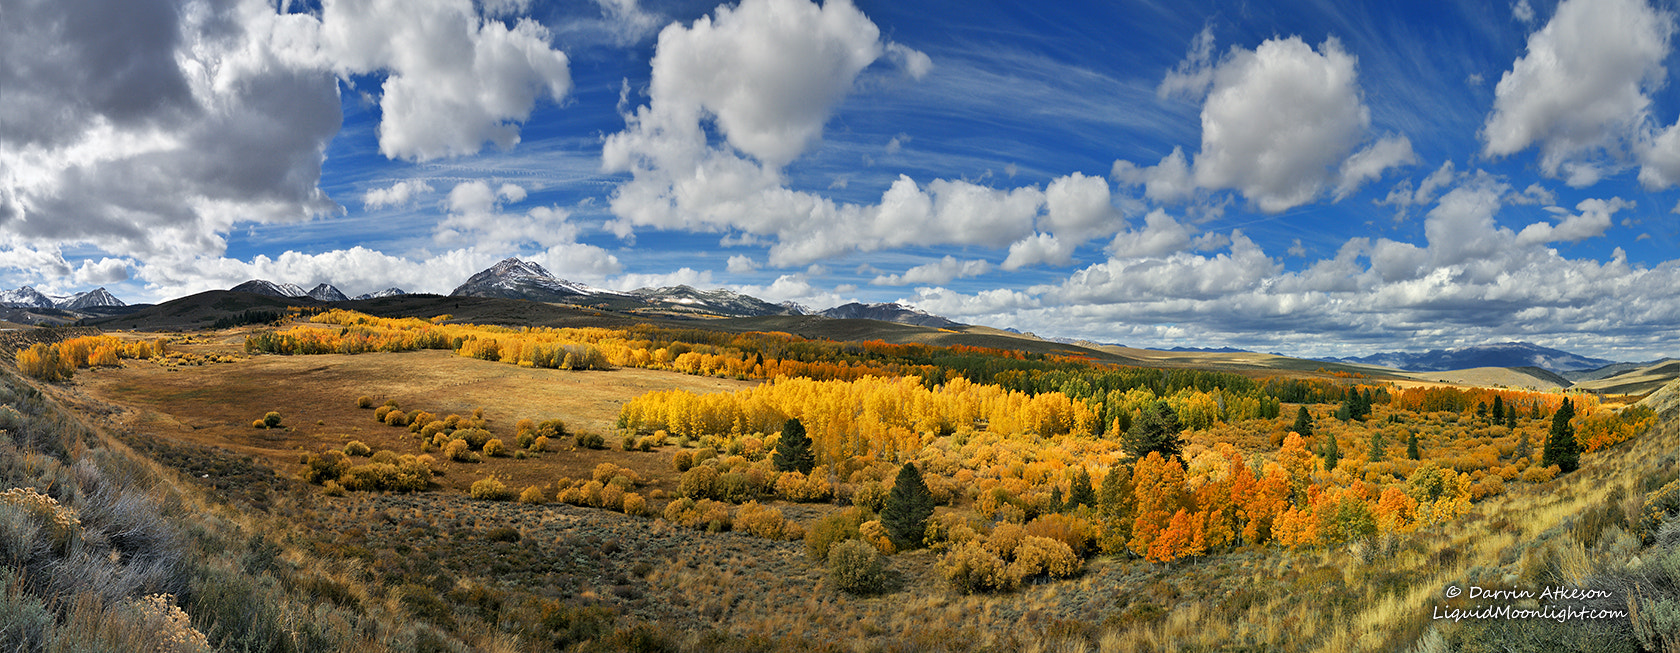 Photograph Eastern Sierra Autumn Color - Conway Sumit Panorama by Darvin Atkeson on 500px